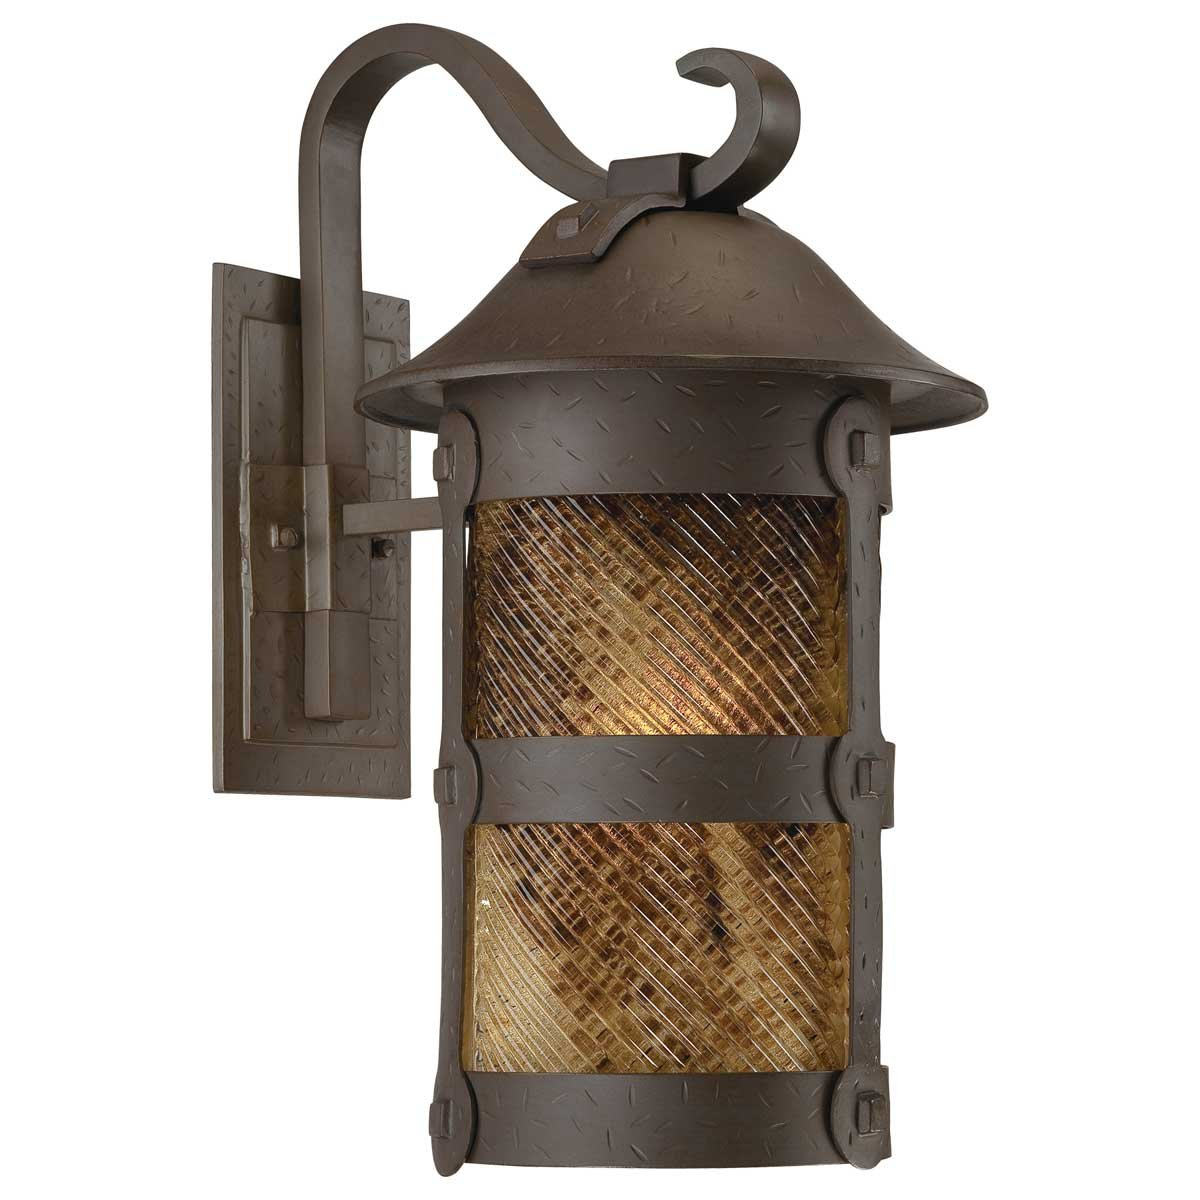 Minka Lavery 9253-A199-PL 1 Light Outdoor Wall Mount Lighting, Forged Bronze Finish